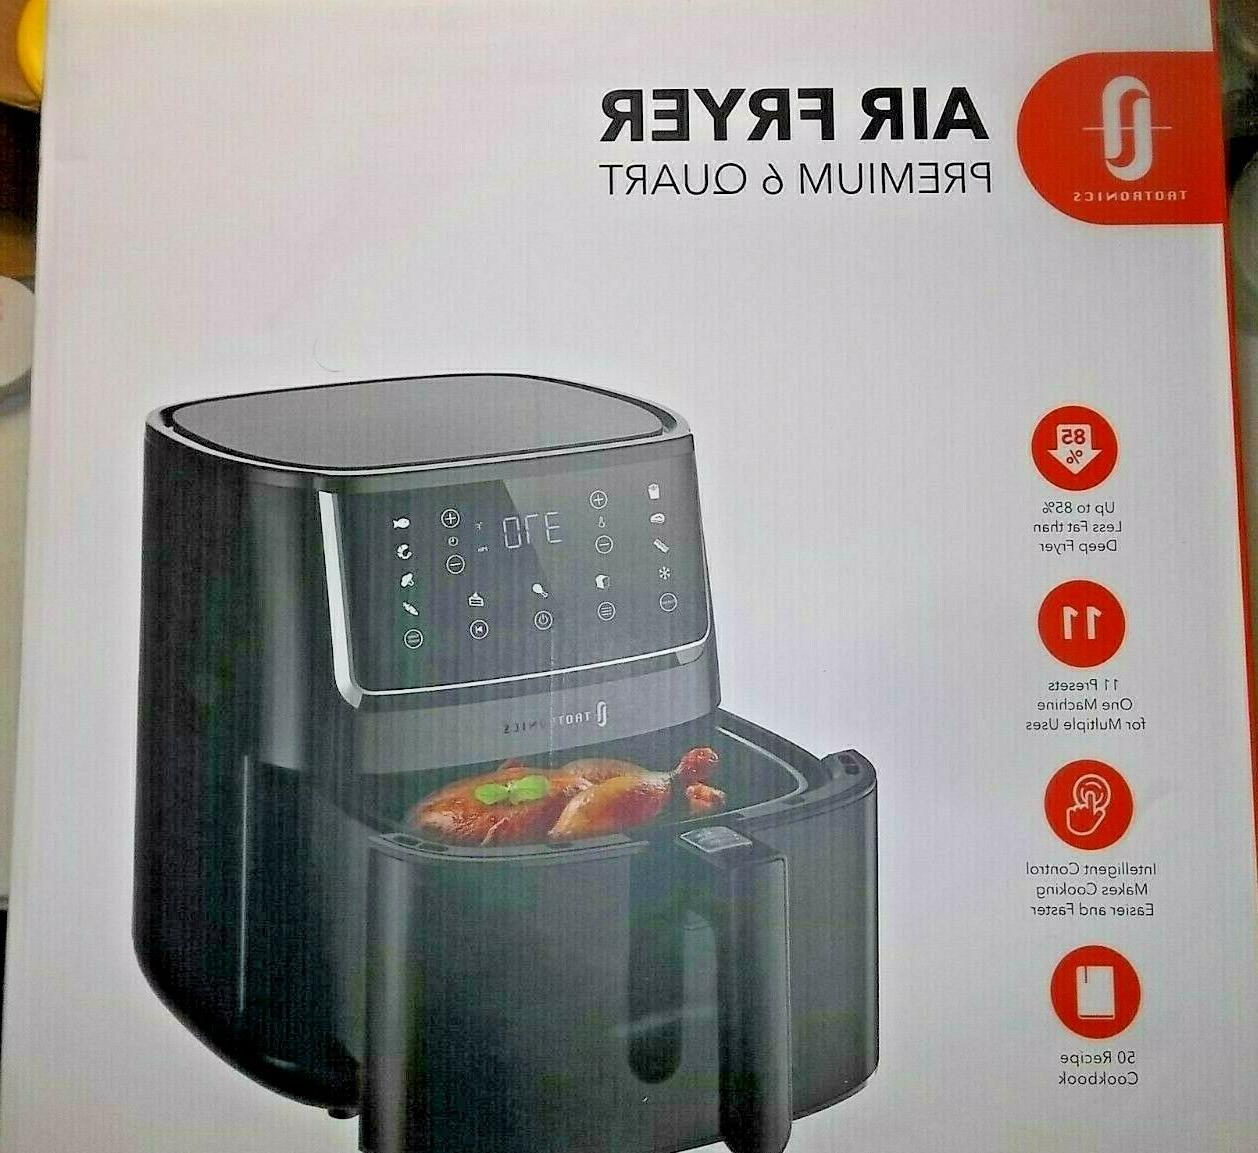 TaoTronics Air Fryer, Large 6 1750W with Control Panel